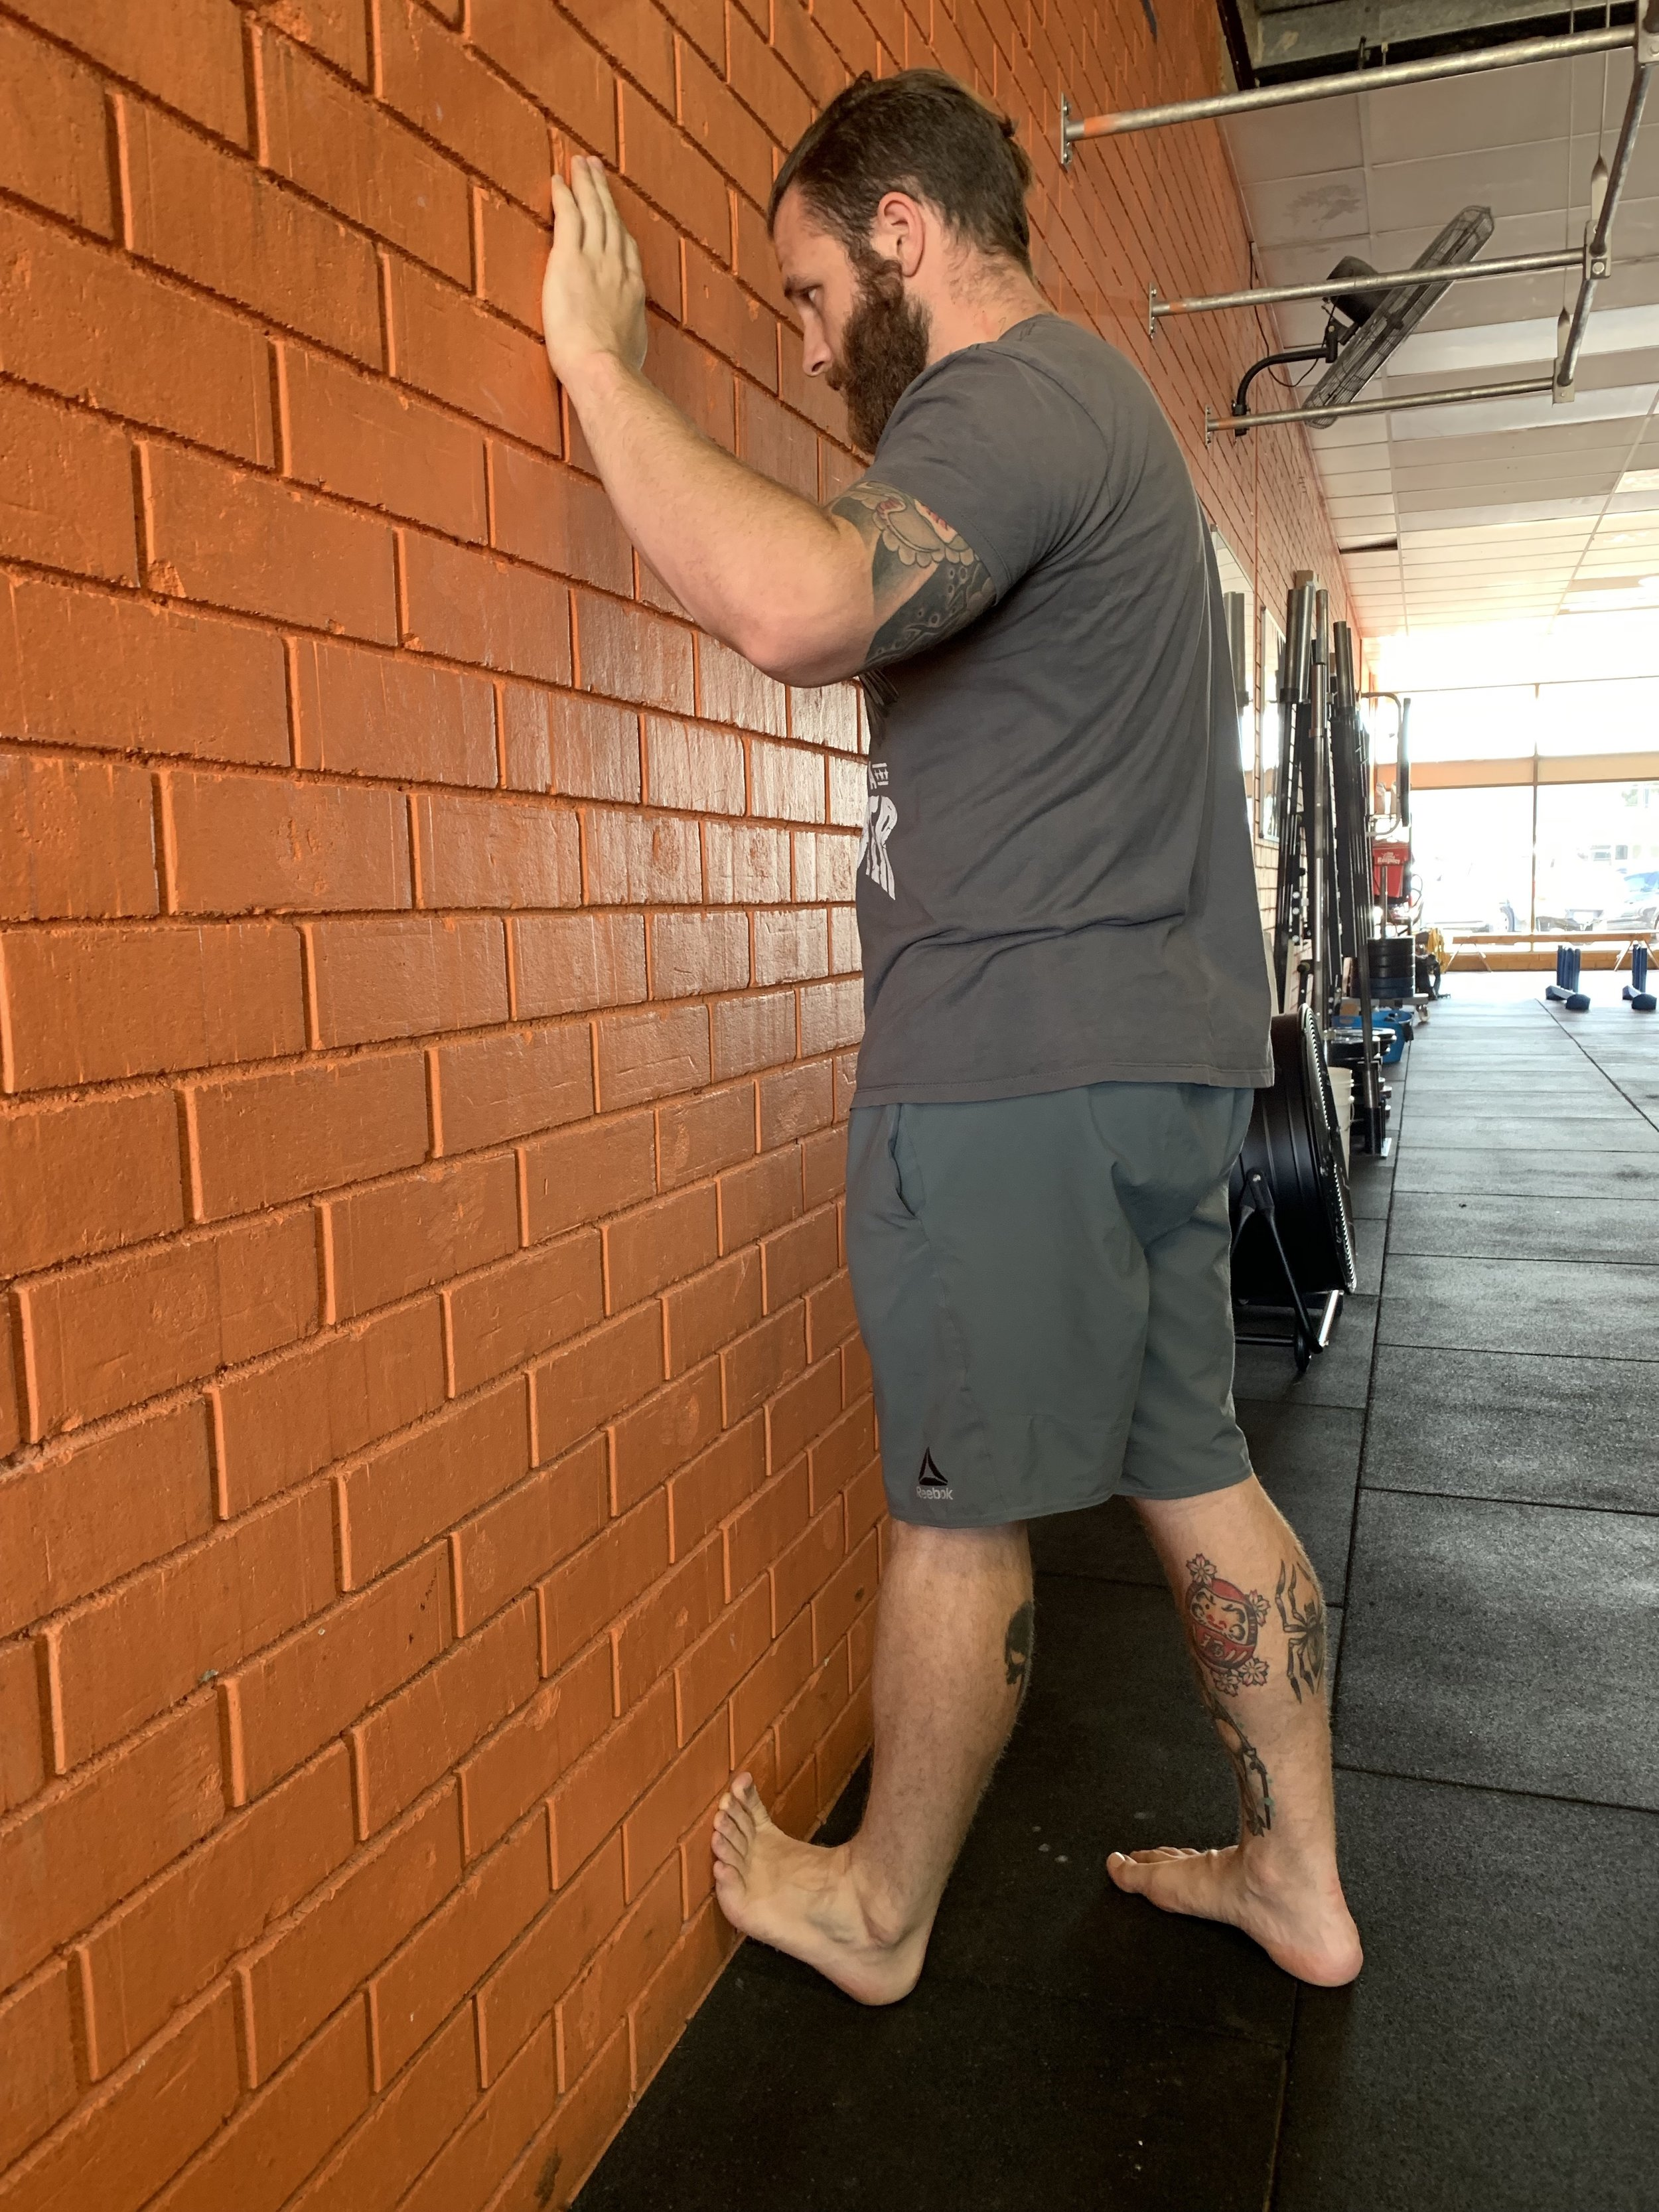 Stretching the gastrocnemius